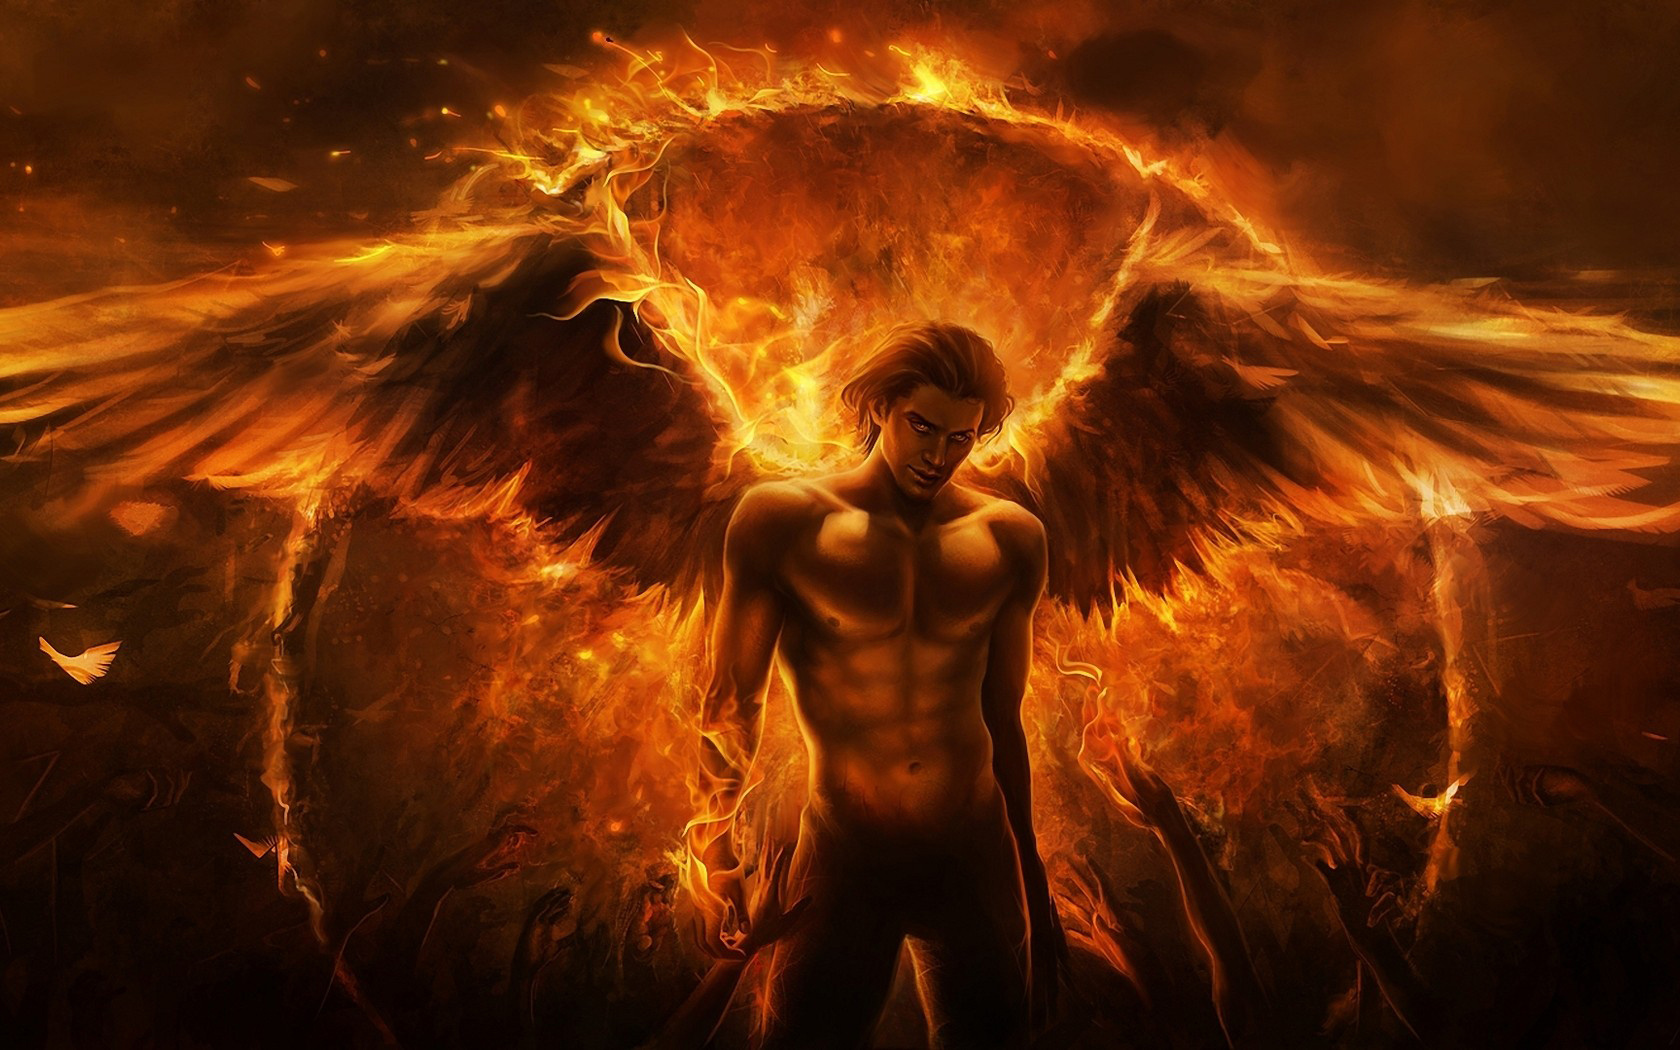 WallSE Man angel fire wing hand flame desktop 3D 1680x1050